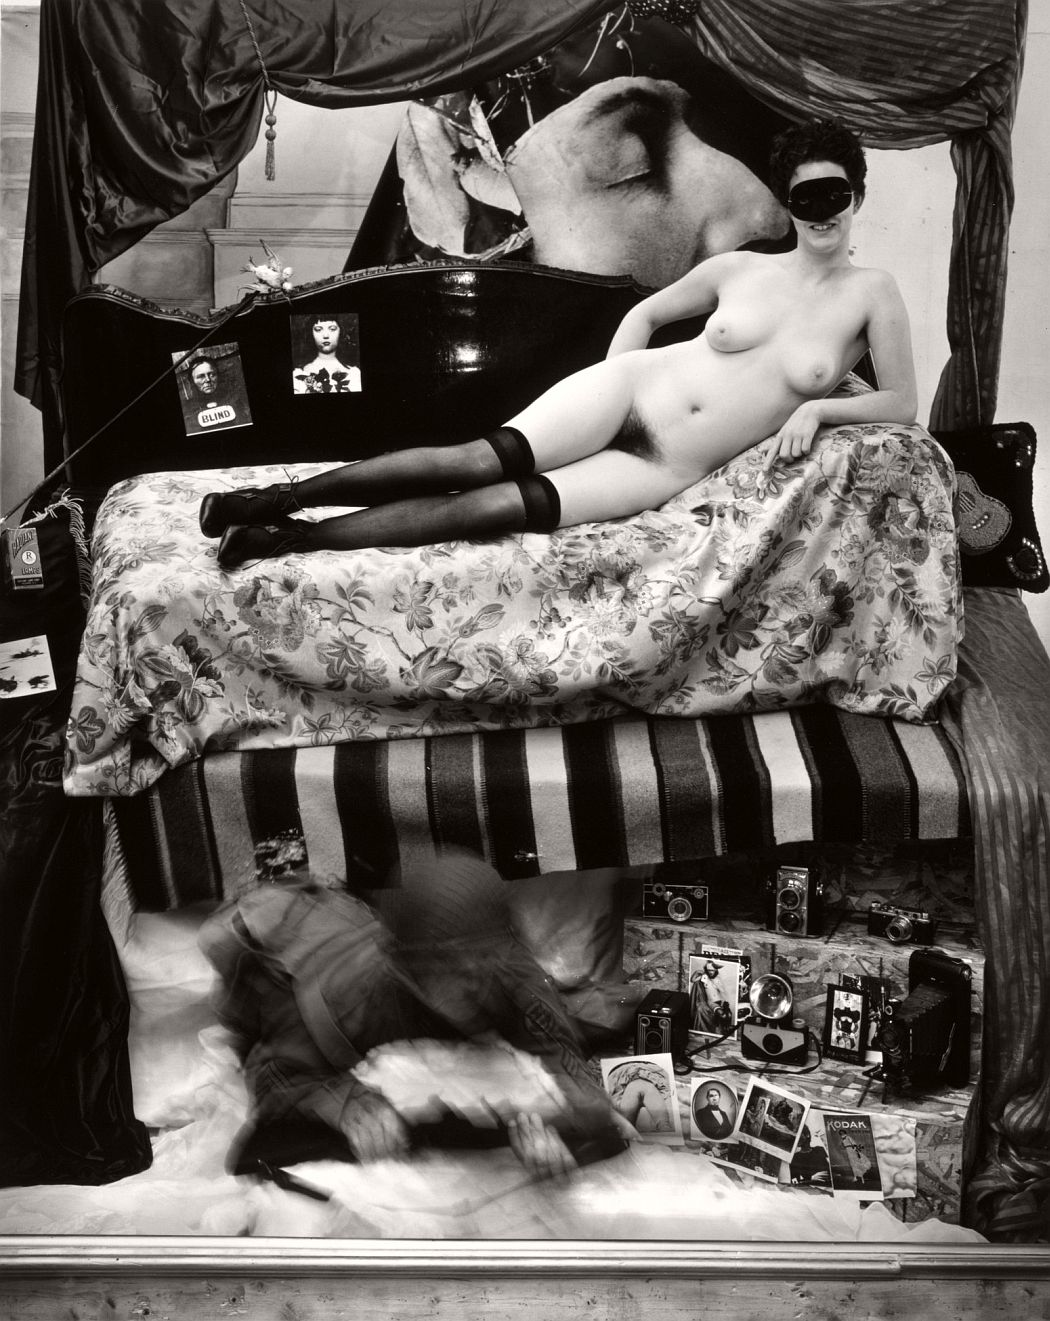 Joel-Peter-Witkin-14